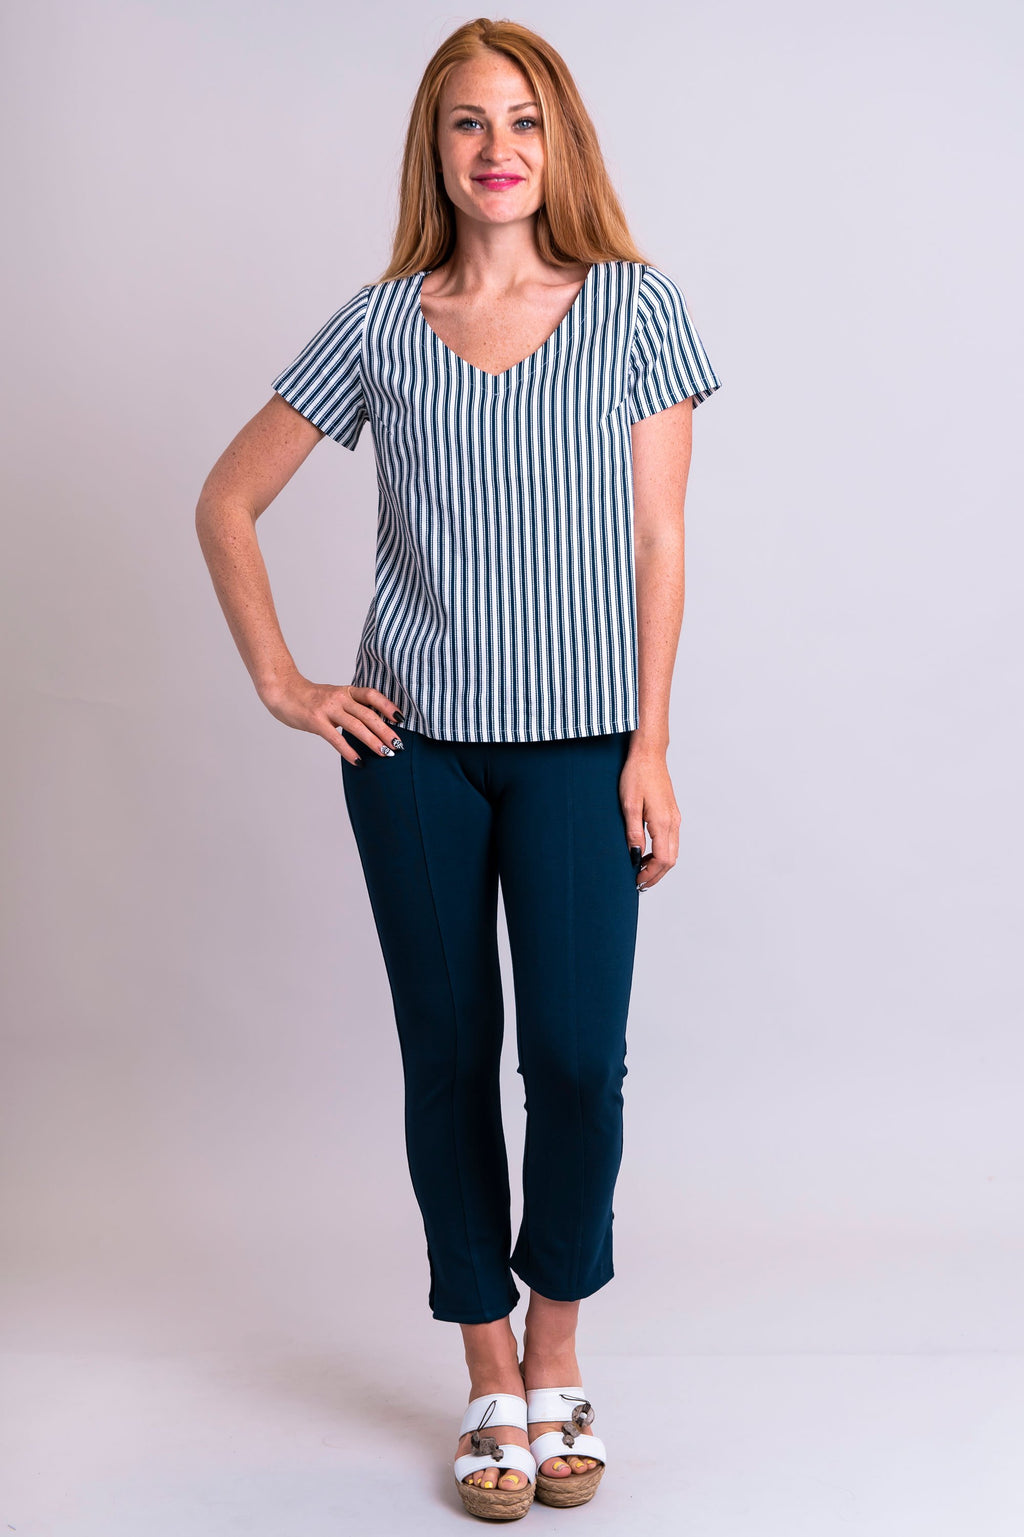 Lyra Top, Indigo Stripe, Linen Viscose - Blue Sky Clothing Co